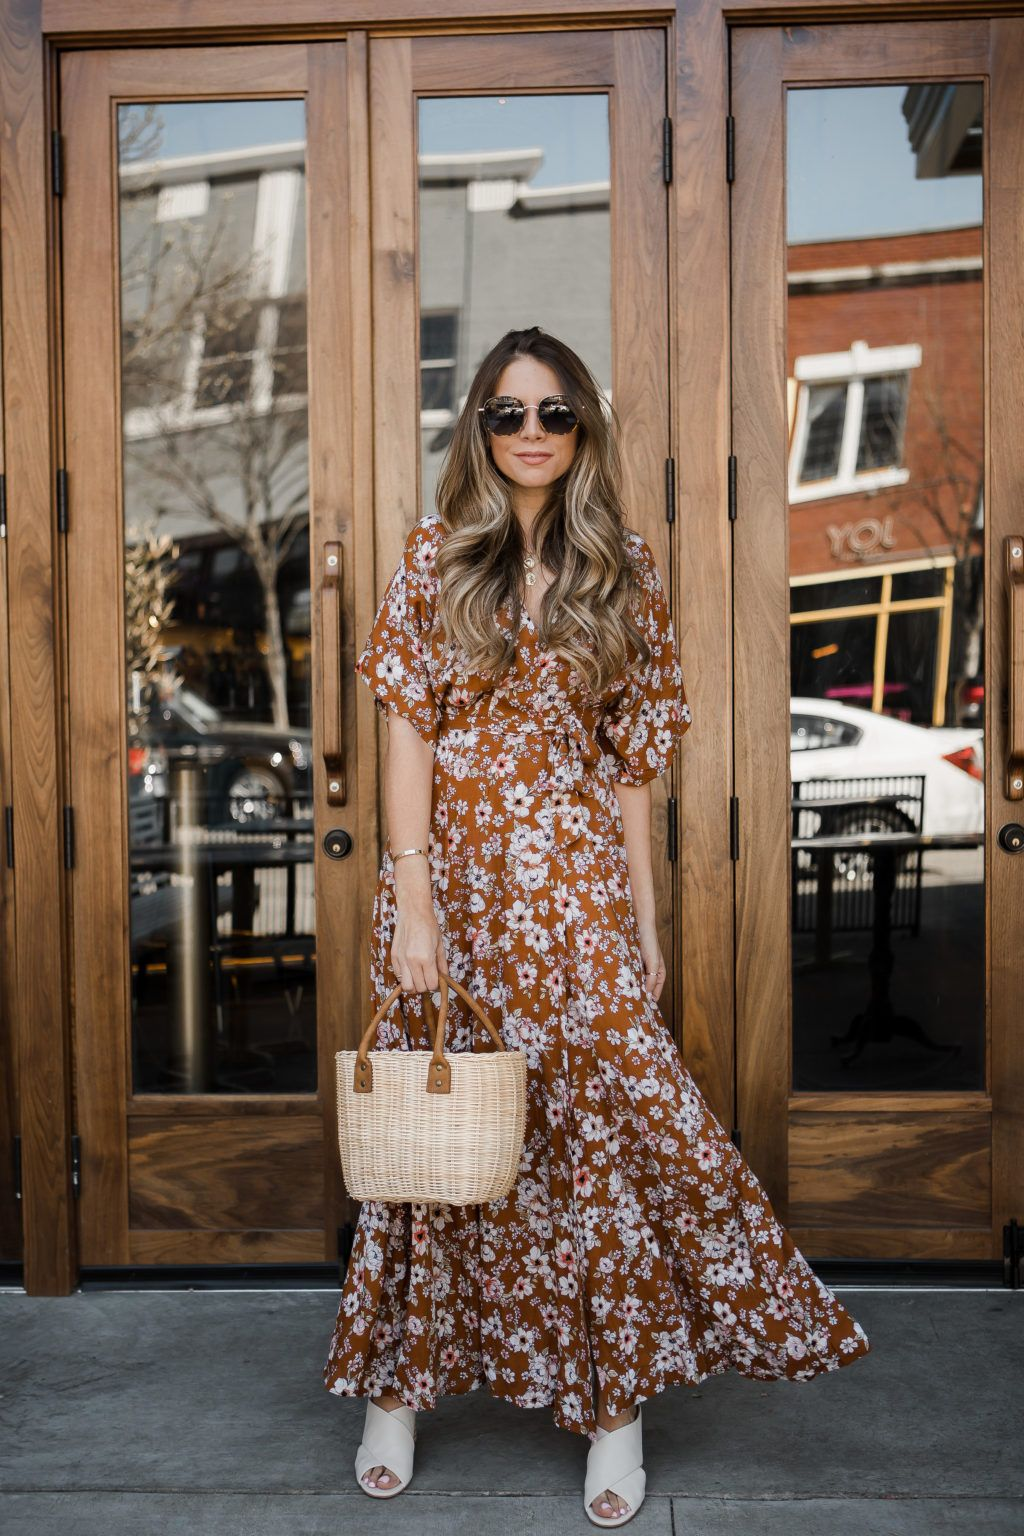 d3ebace7145a 5 Floral Maxi Dresses to Wear this Spring and Summer